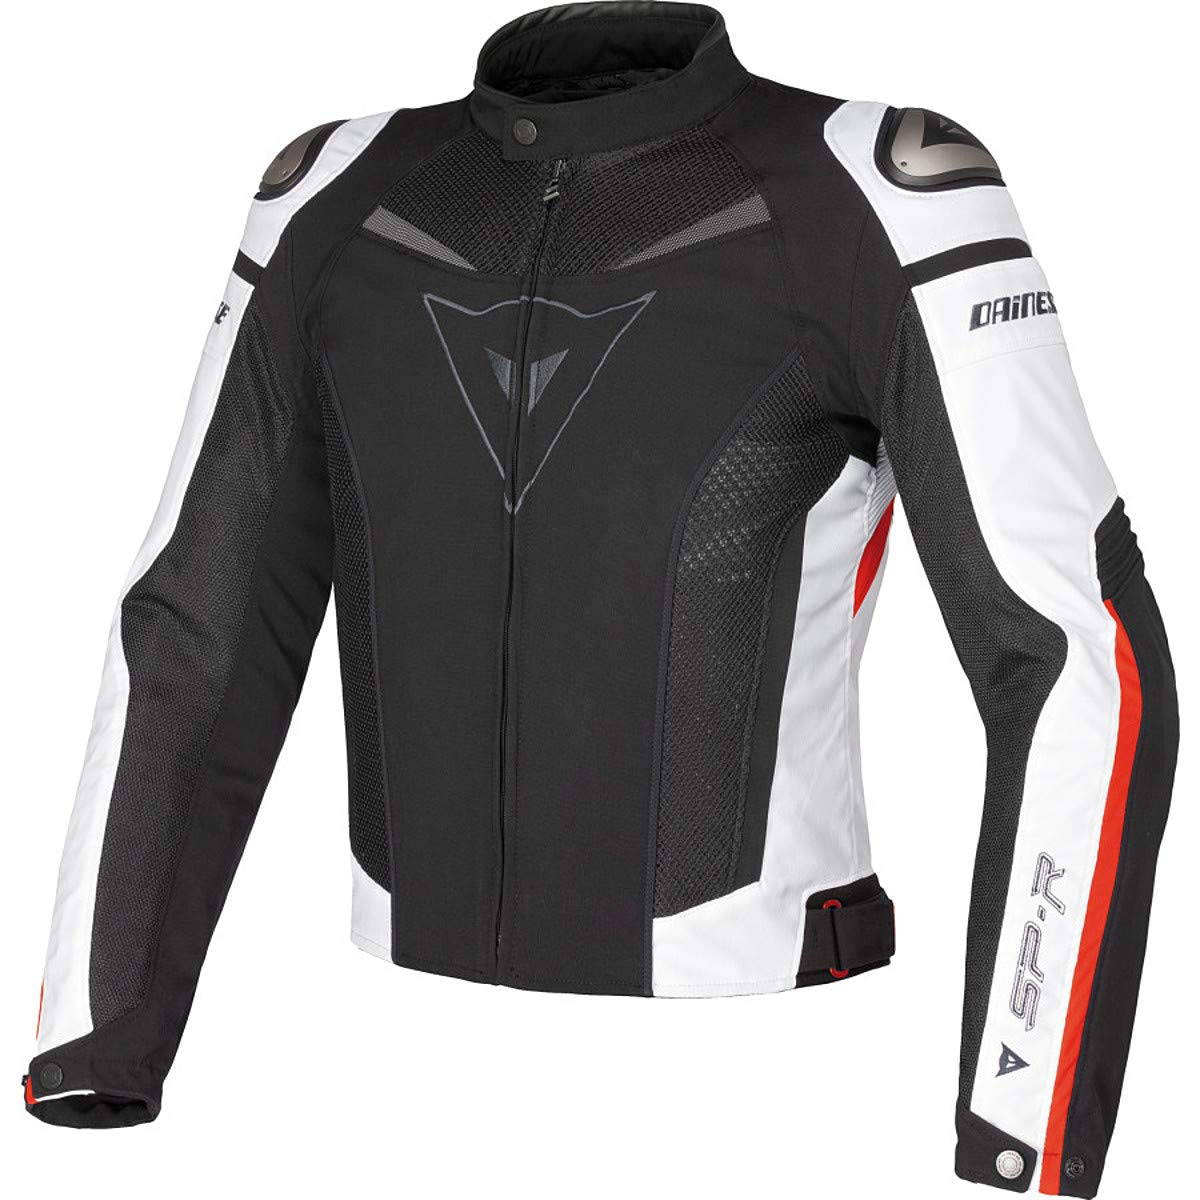 Dainese Super Speed Textile Jacket (54 US / 64 Euro) (Black/White/Red)